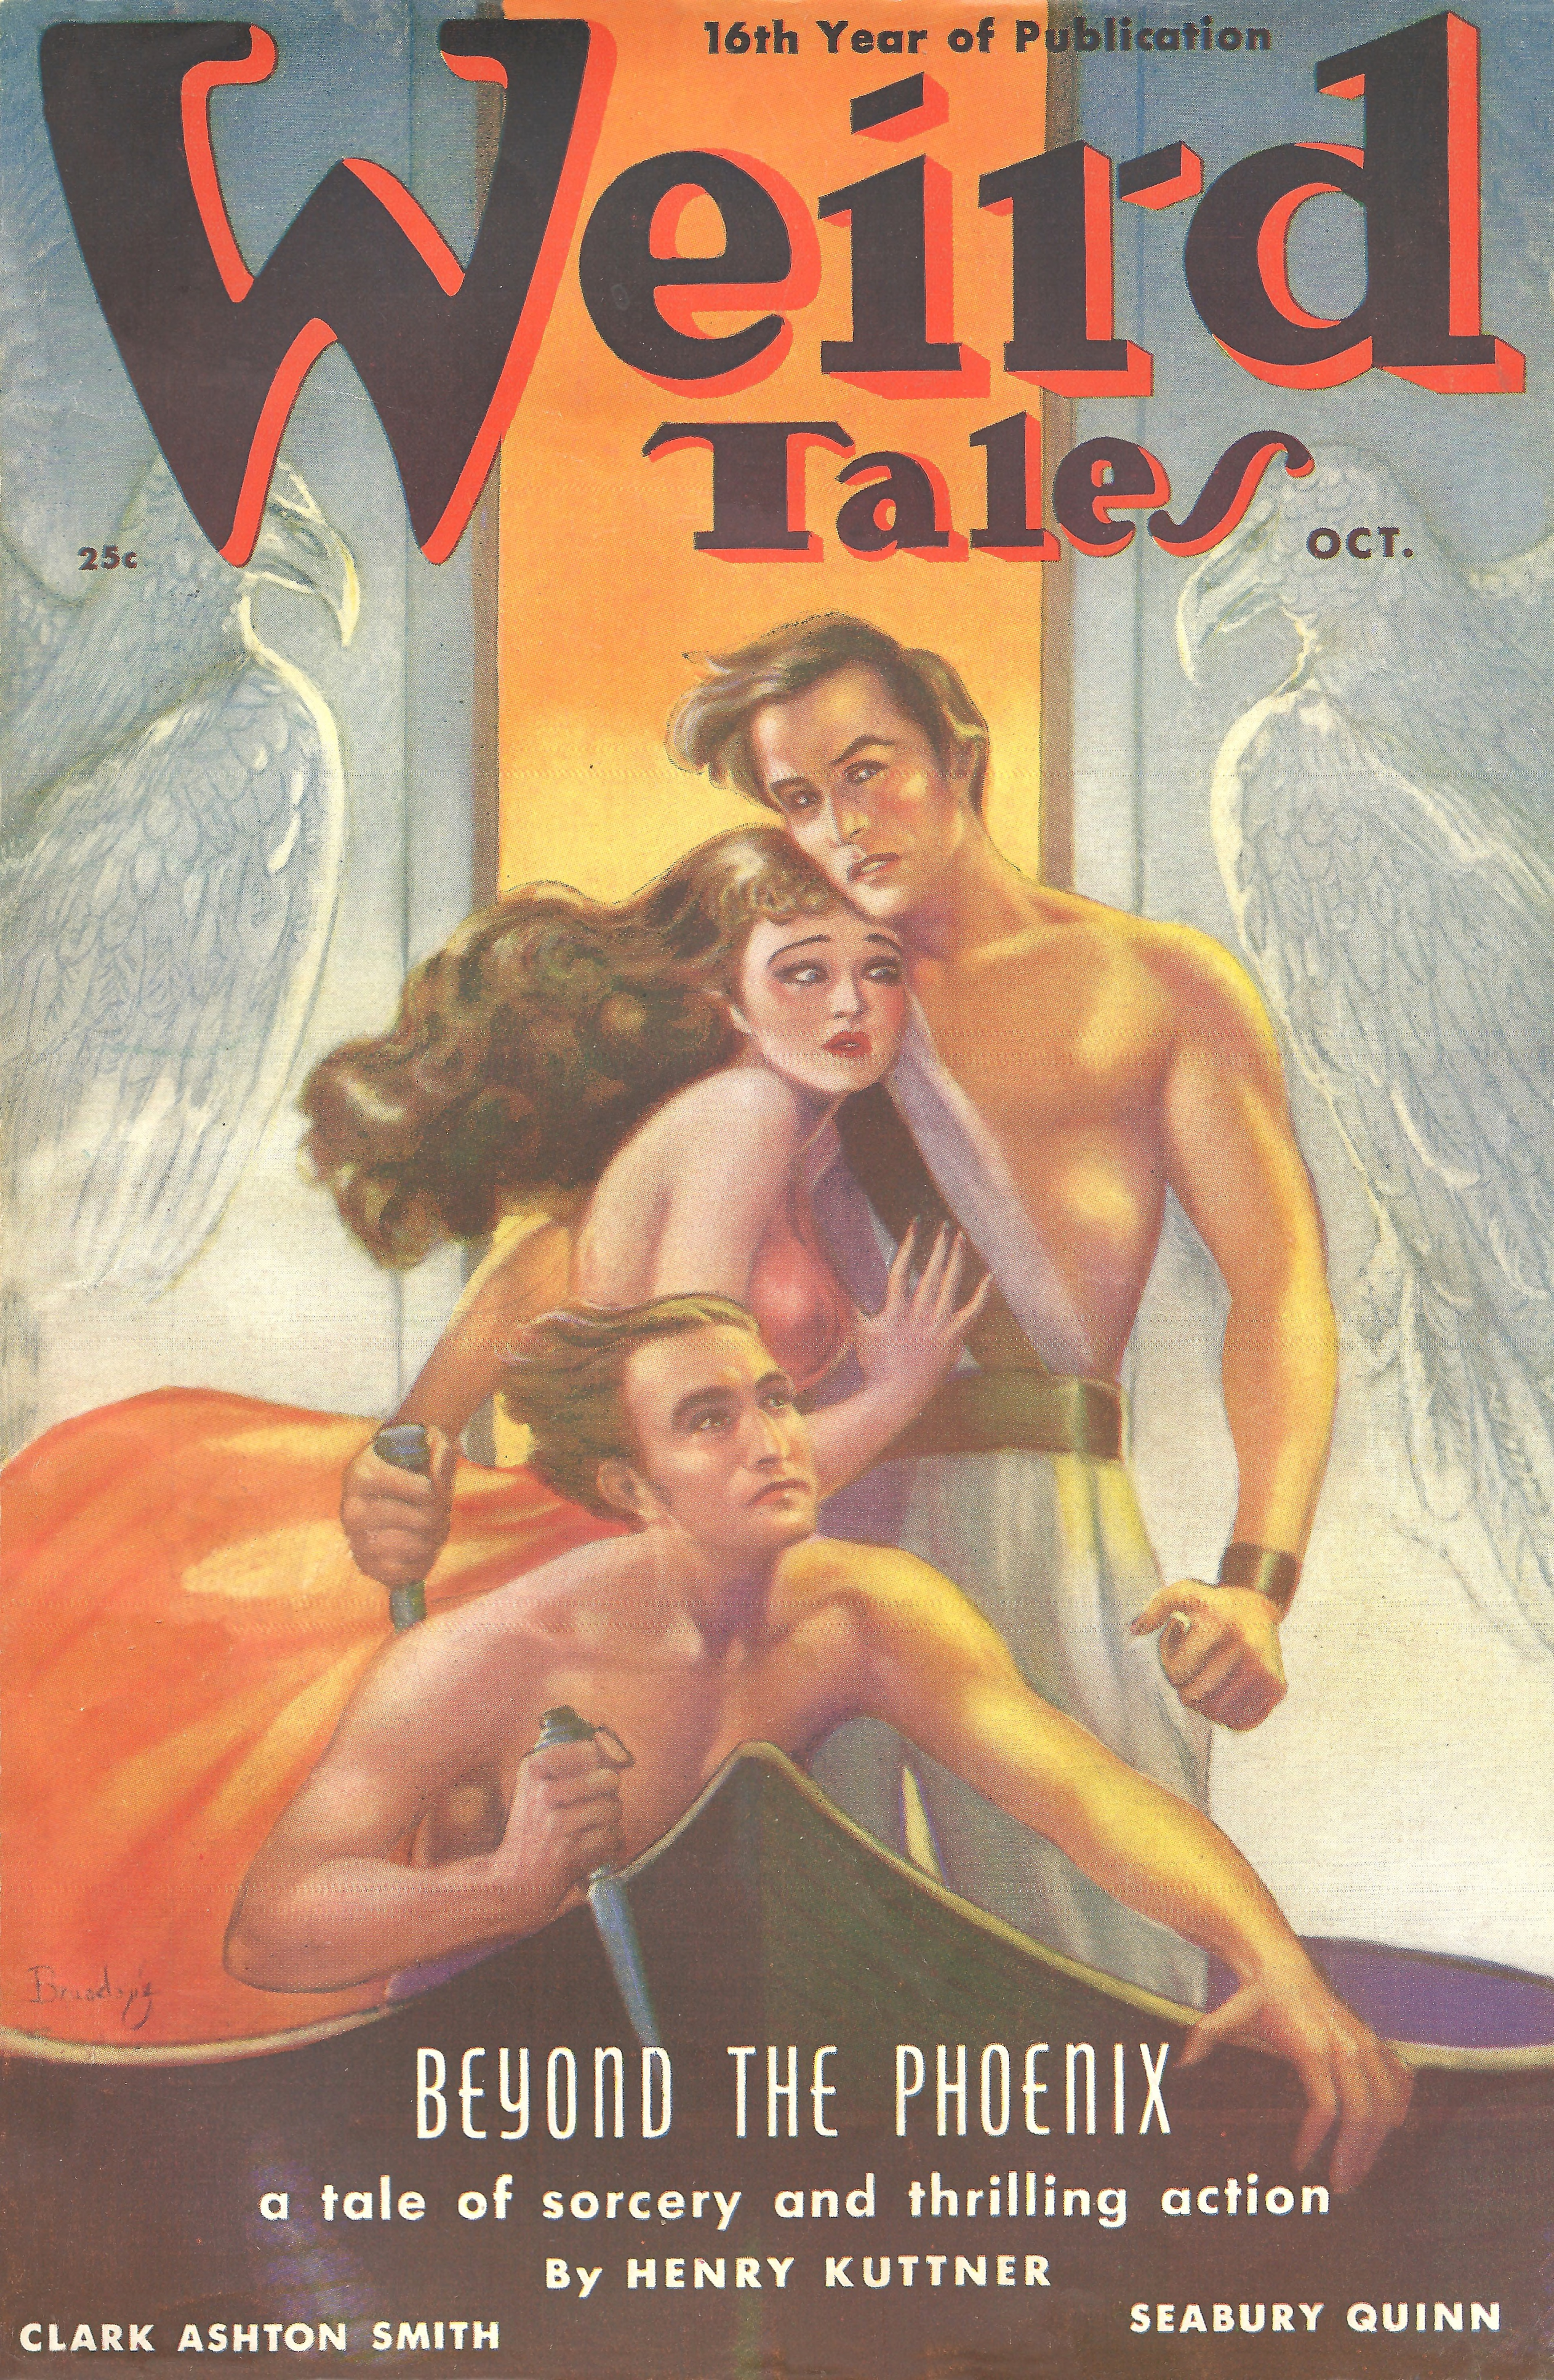 A cover by Margaret Brundage for Weird Tales, October 1938.